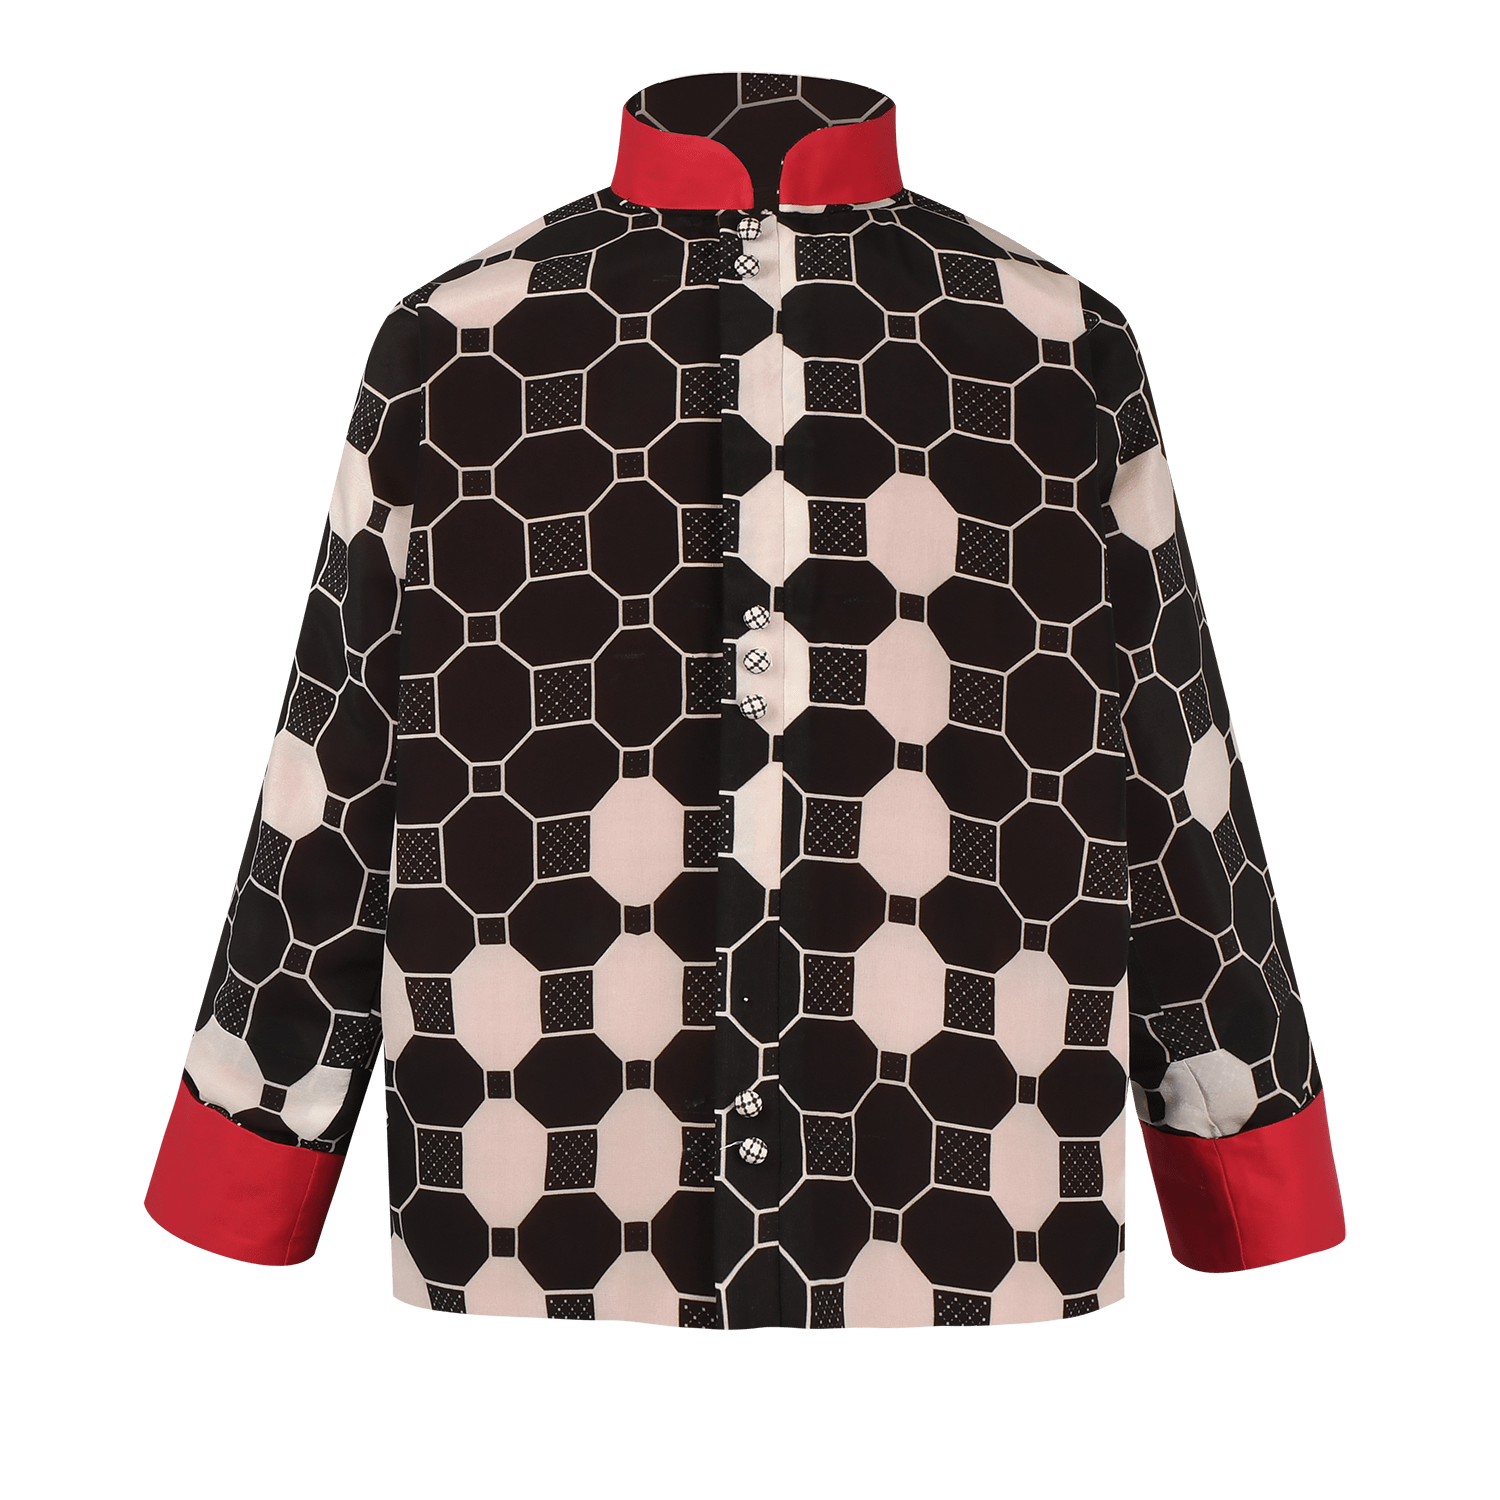 【TILE】100% Silk Reversible Tang Jacket-Junior - THE SPARKLE COLLECTION by GERMAN POOL